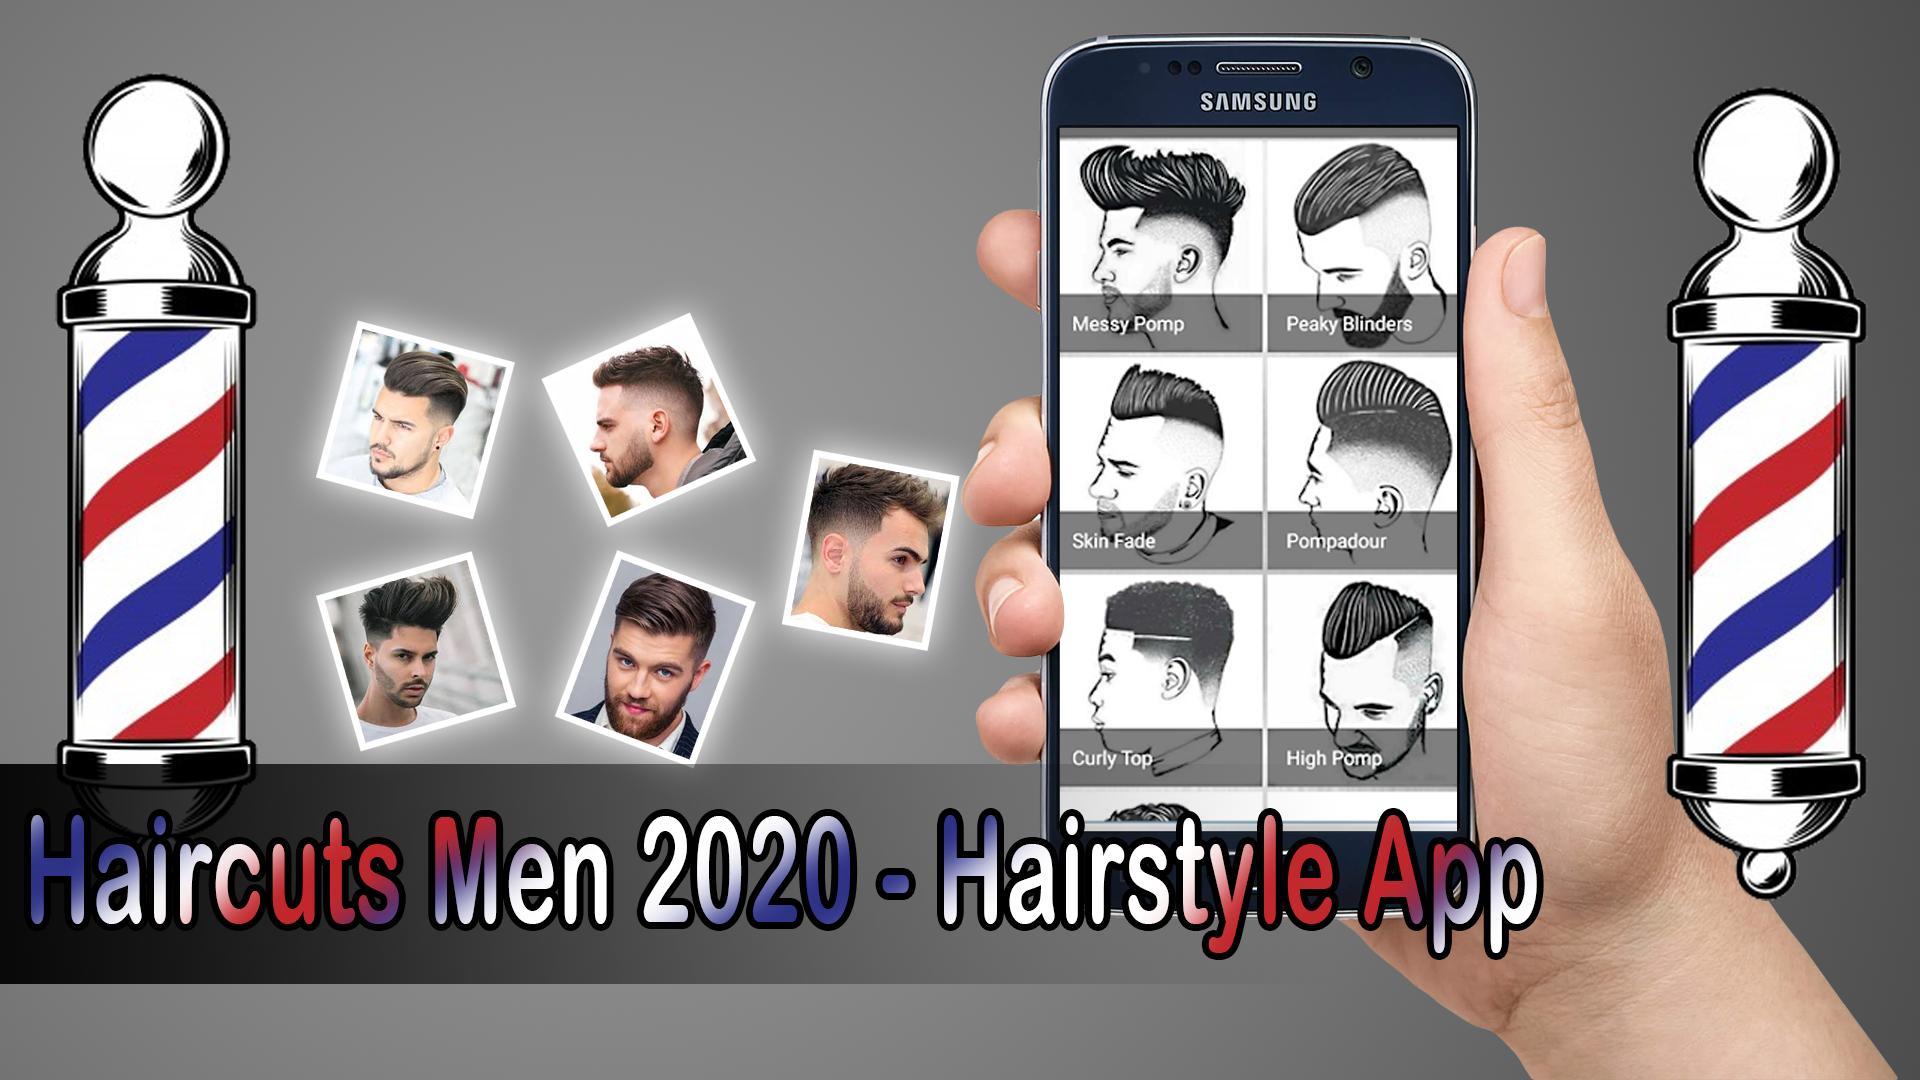 Marvelous Haircuts Men 2020 Hairstyle App For Android Apk Download Schematic Wiring Diagrams Phreekkolirunnerswayorg